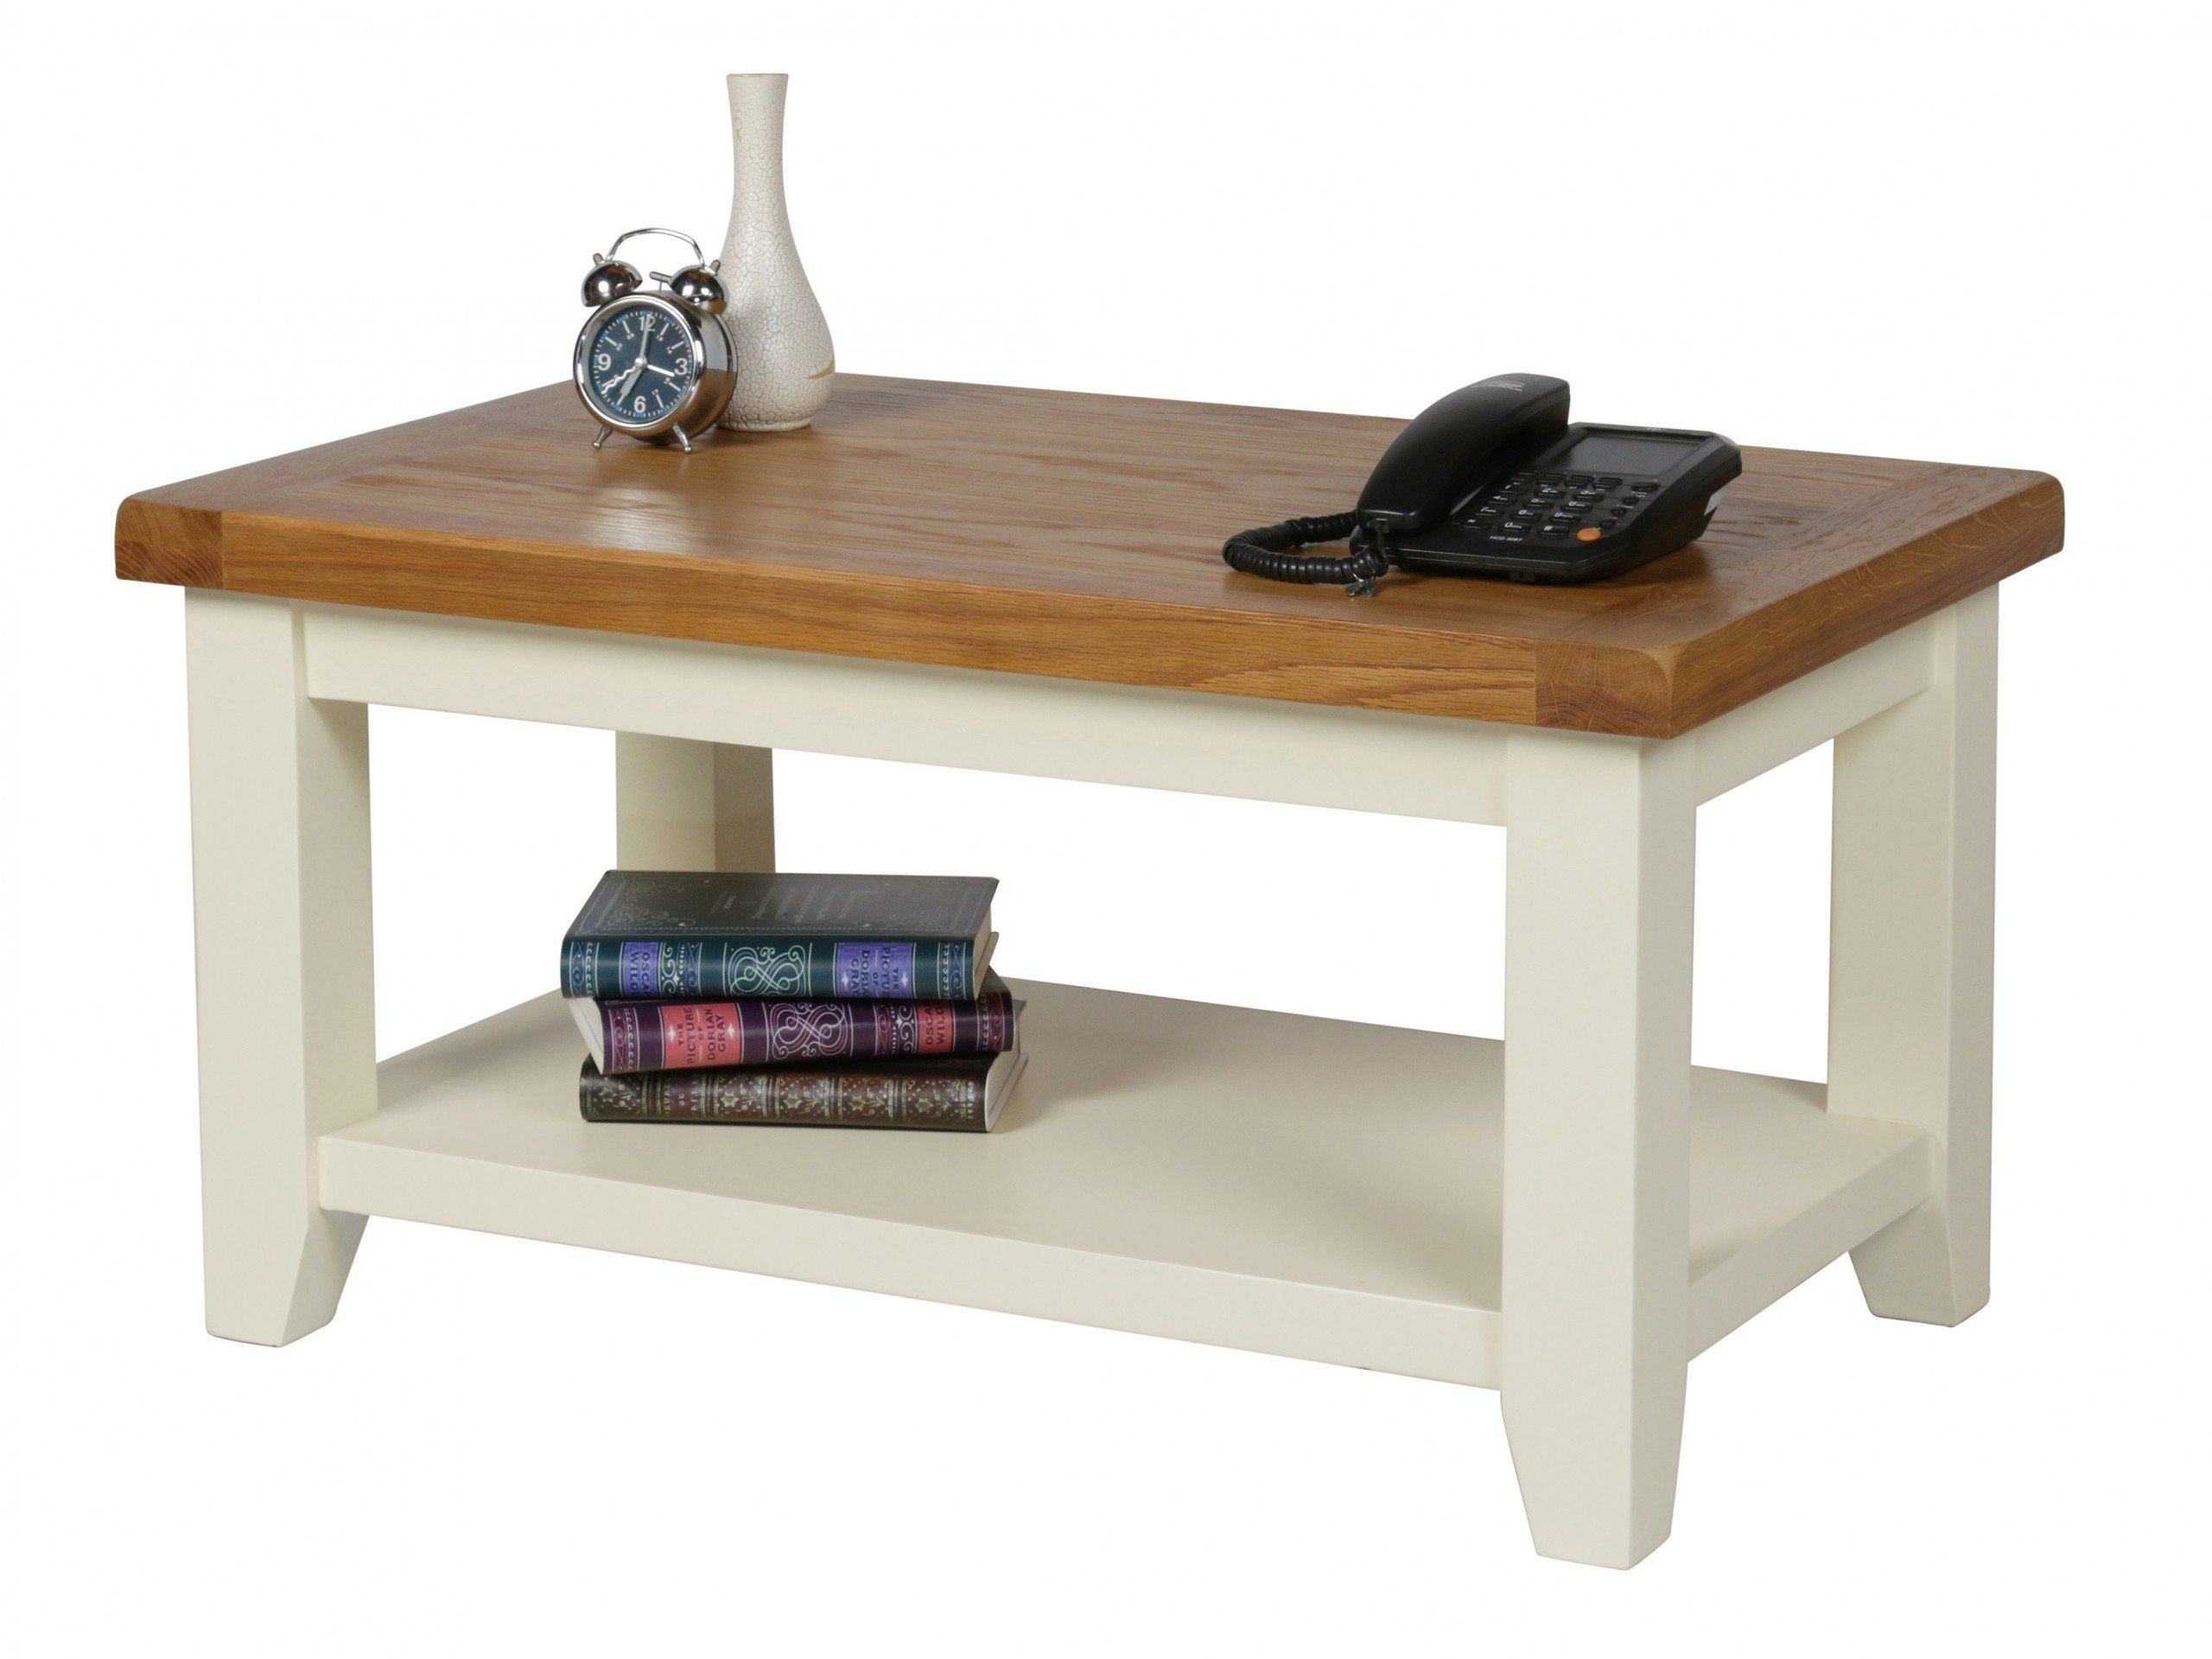 The stunning cream painted Country Cottage Coffee Table with shelf